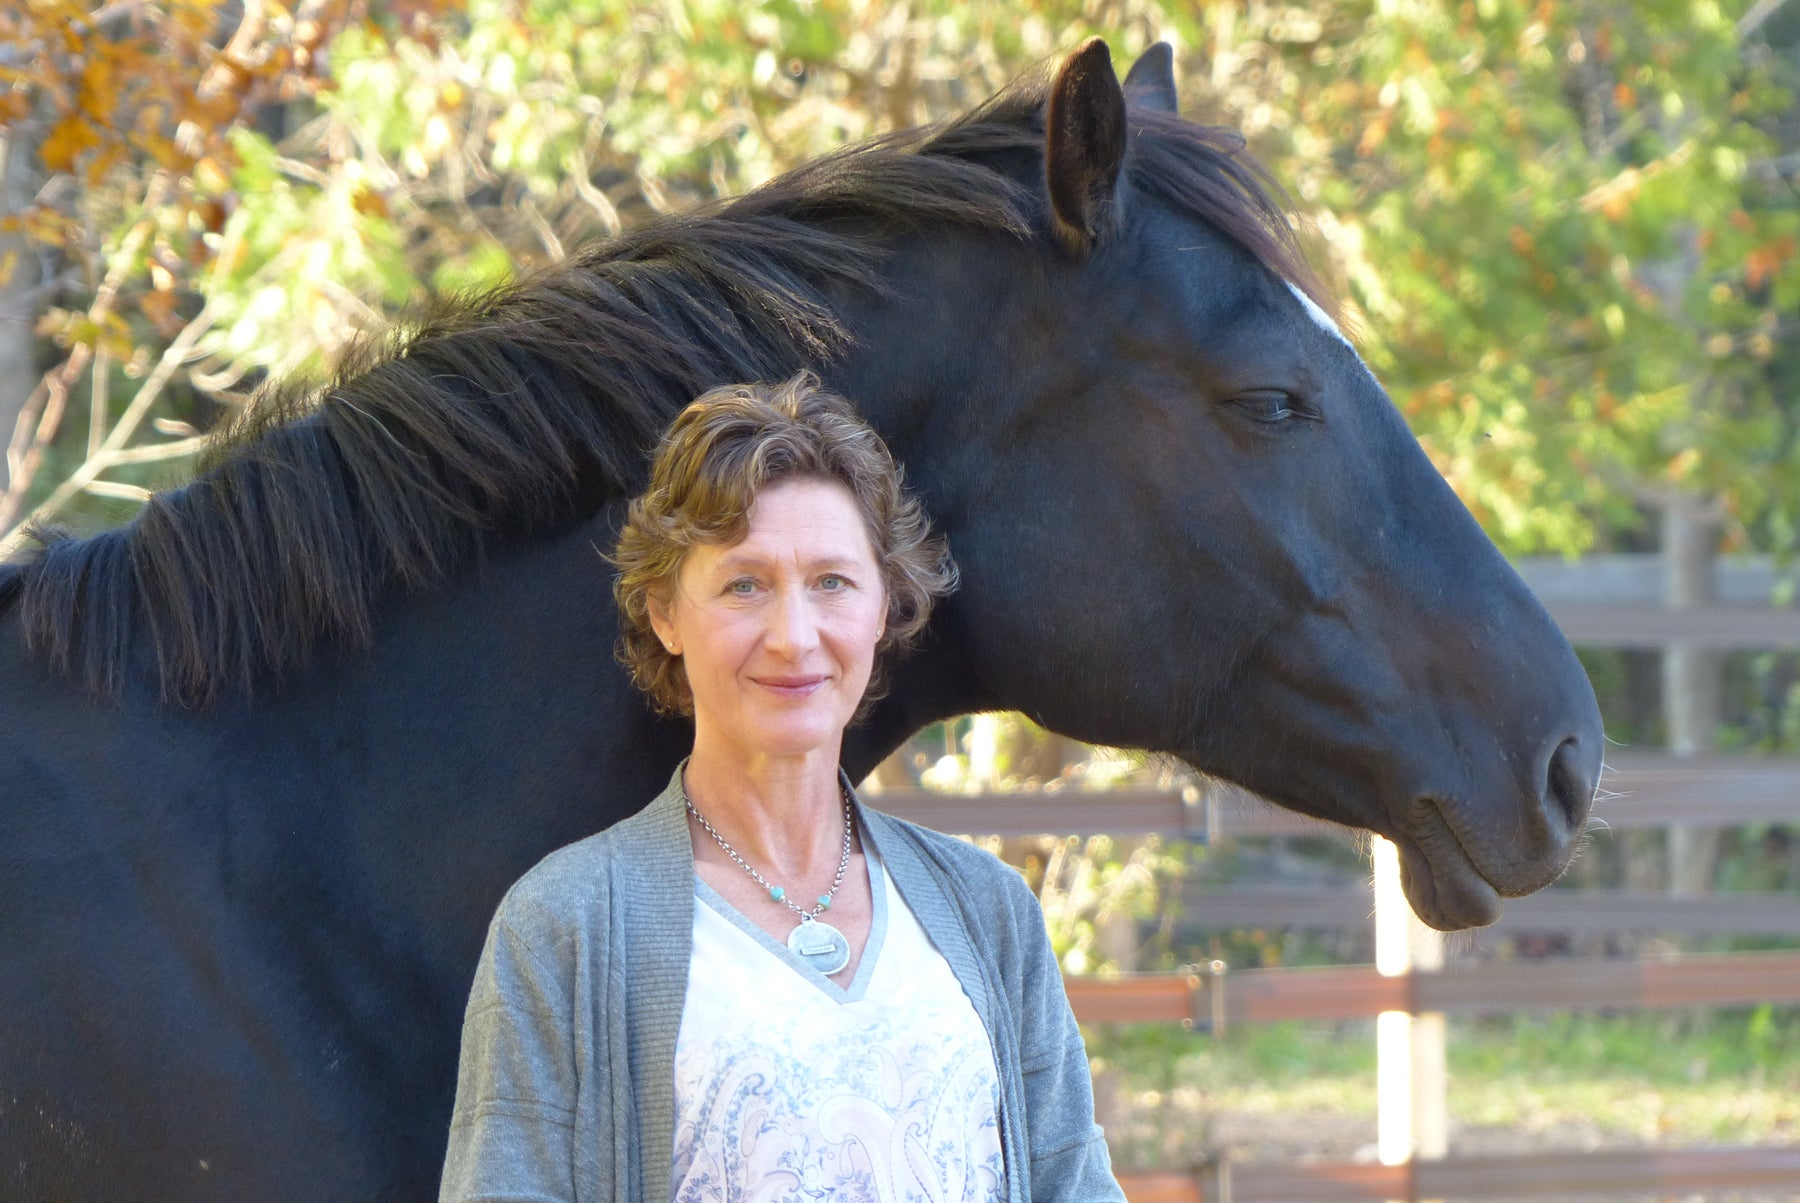 Dec 10:  A lesson from horses - Using boundaries to create presence